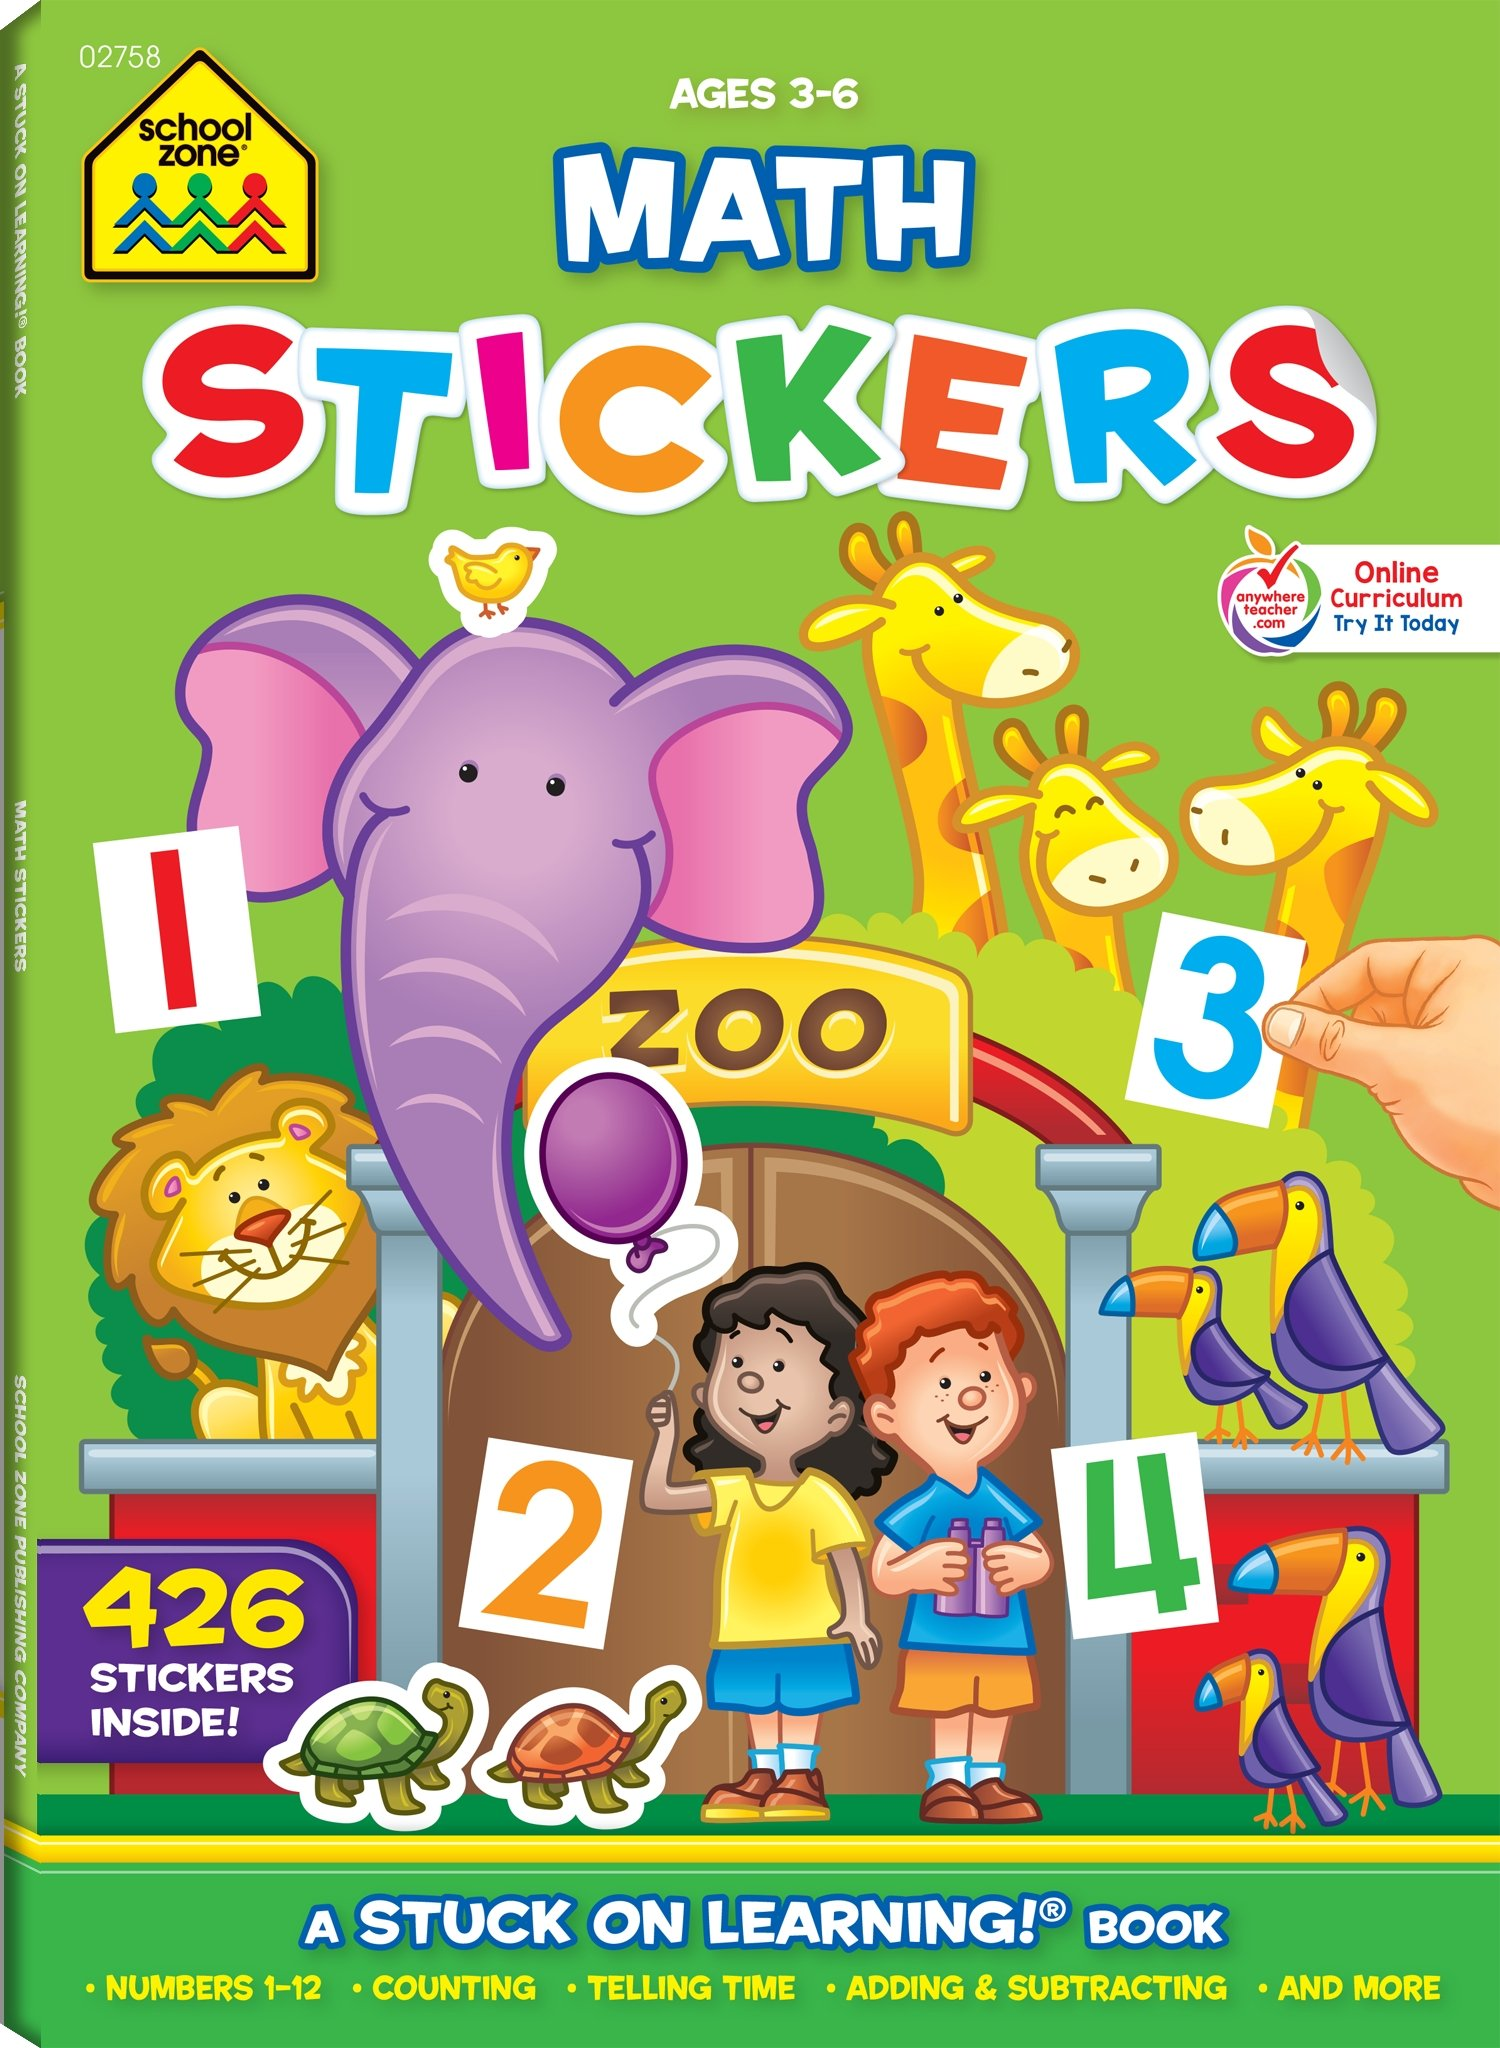 School Zone - Math Stickers Workbook - Ages 3 to 6, Grades Preschool through Kindergarten, Counting, Numbers, and Basic Math pdf